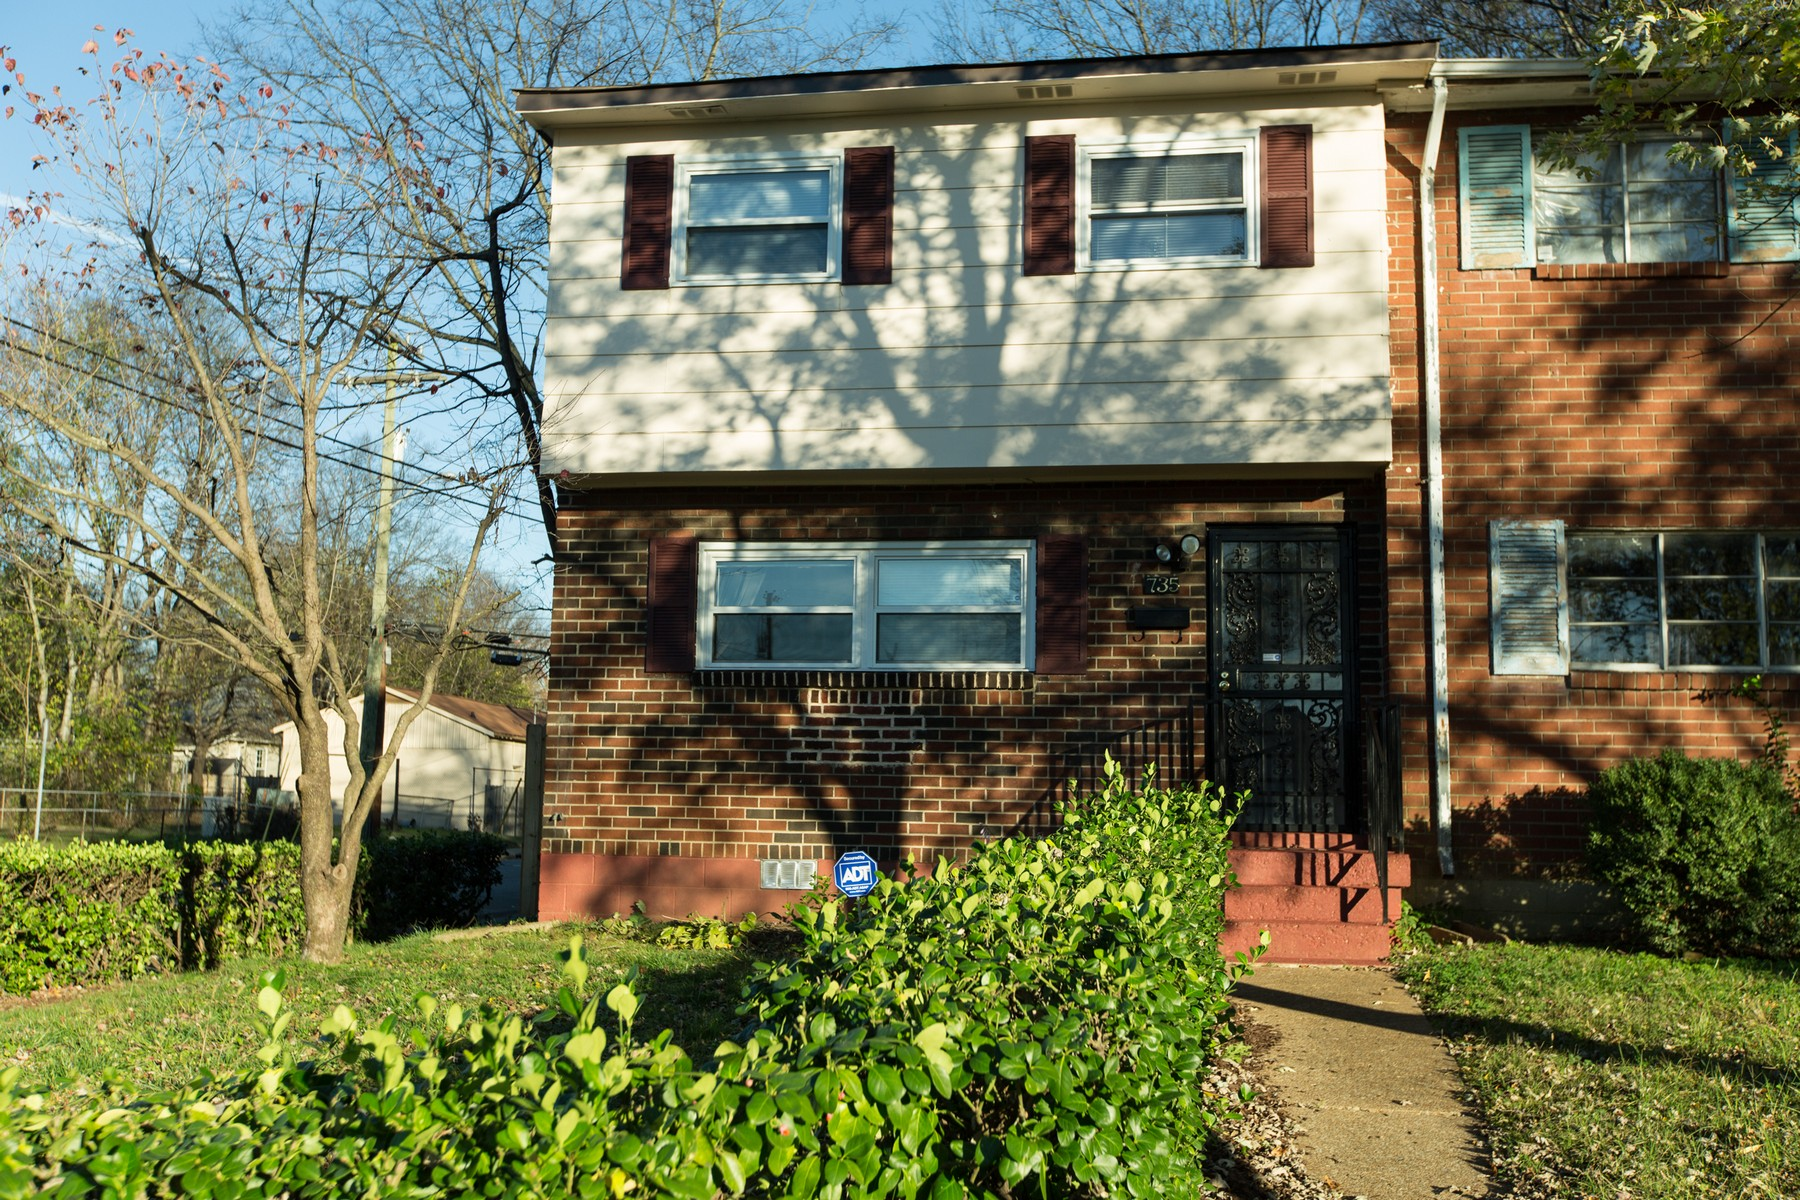 Single Family Home for Sale at Great Opportunity in Nashville 735 Joseph Avenue Nashville, Tennessee 37207 United States